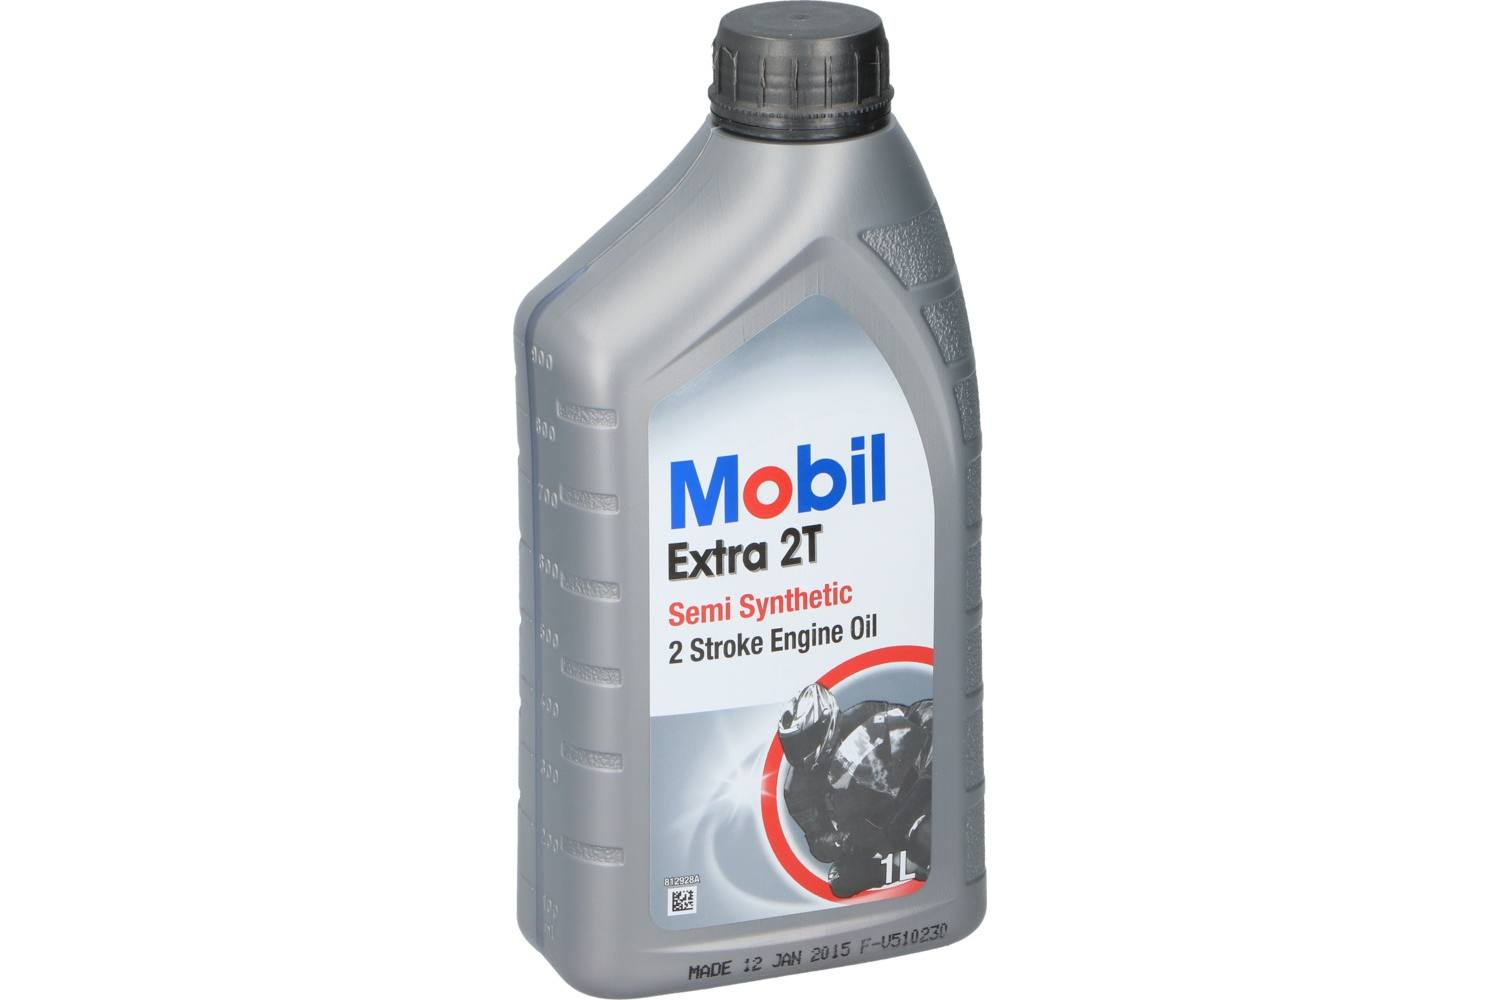 Motor oil, Mobil Extra, 2T, 1l 1